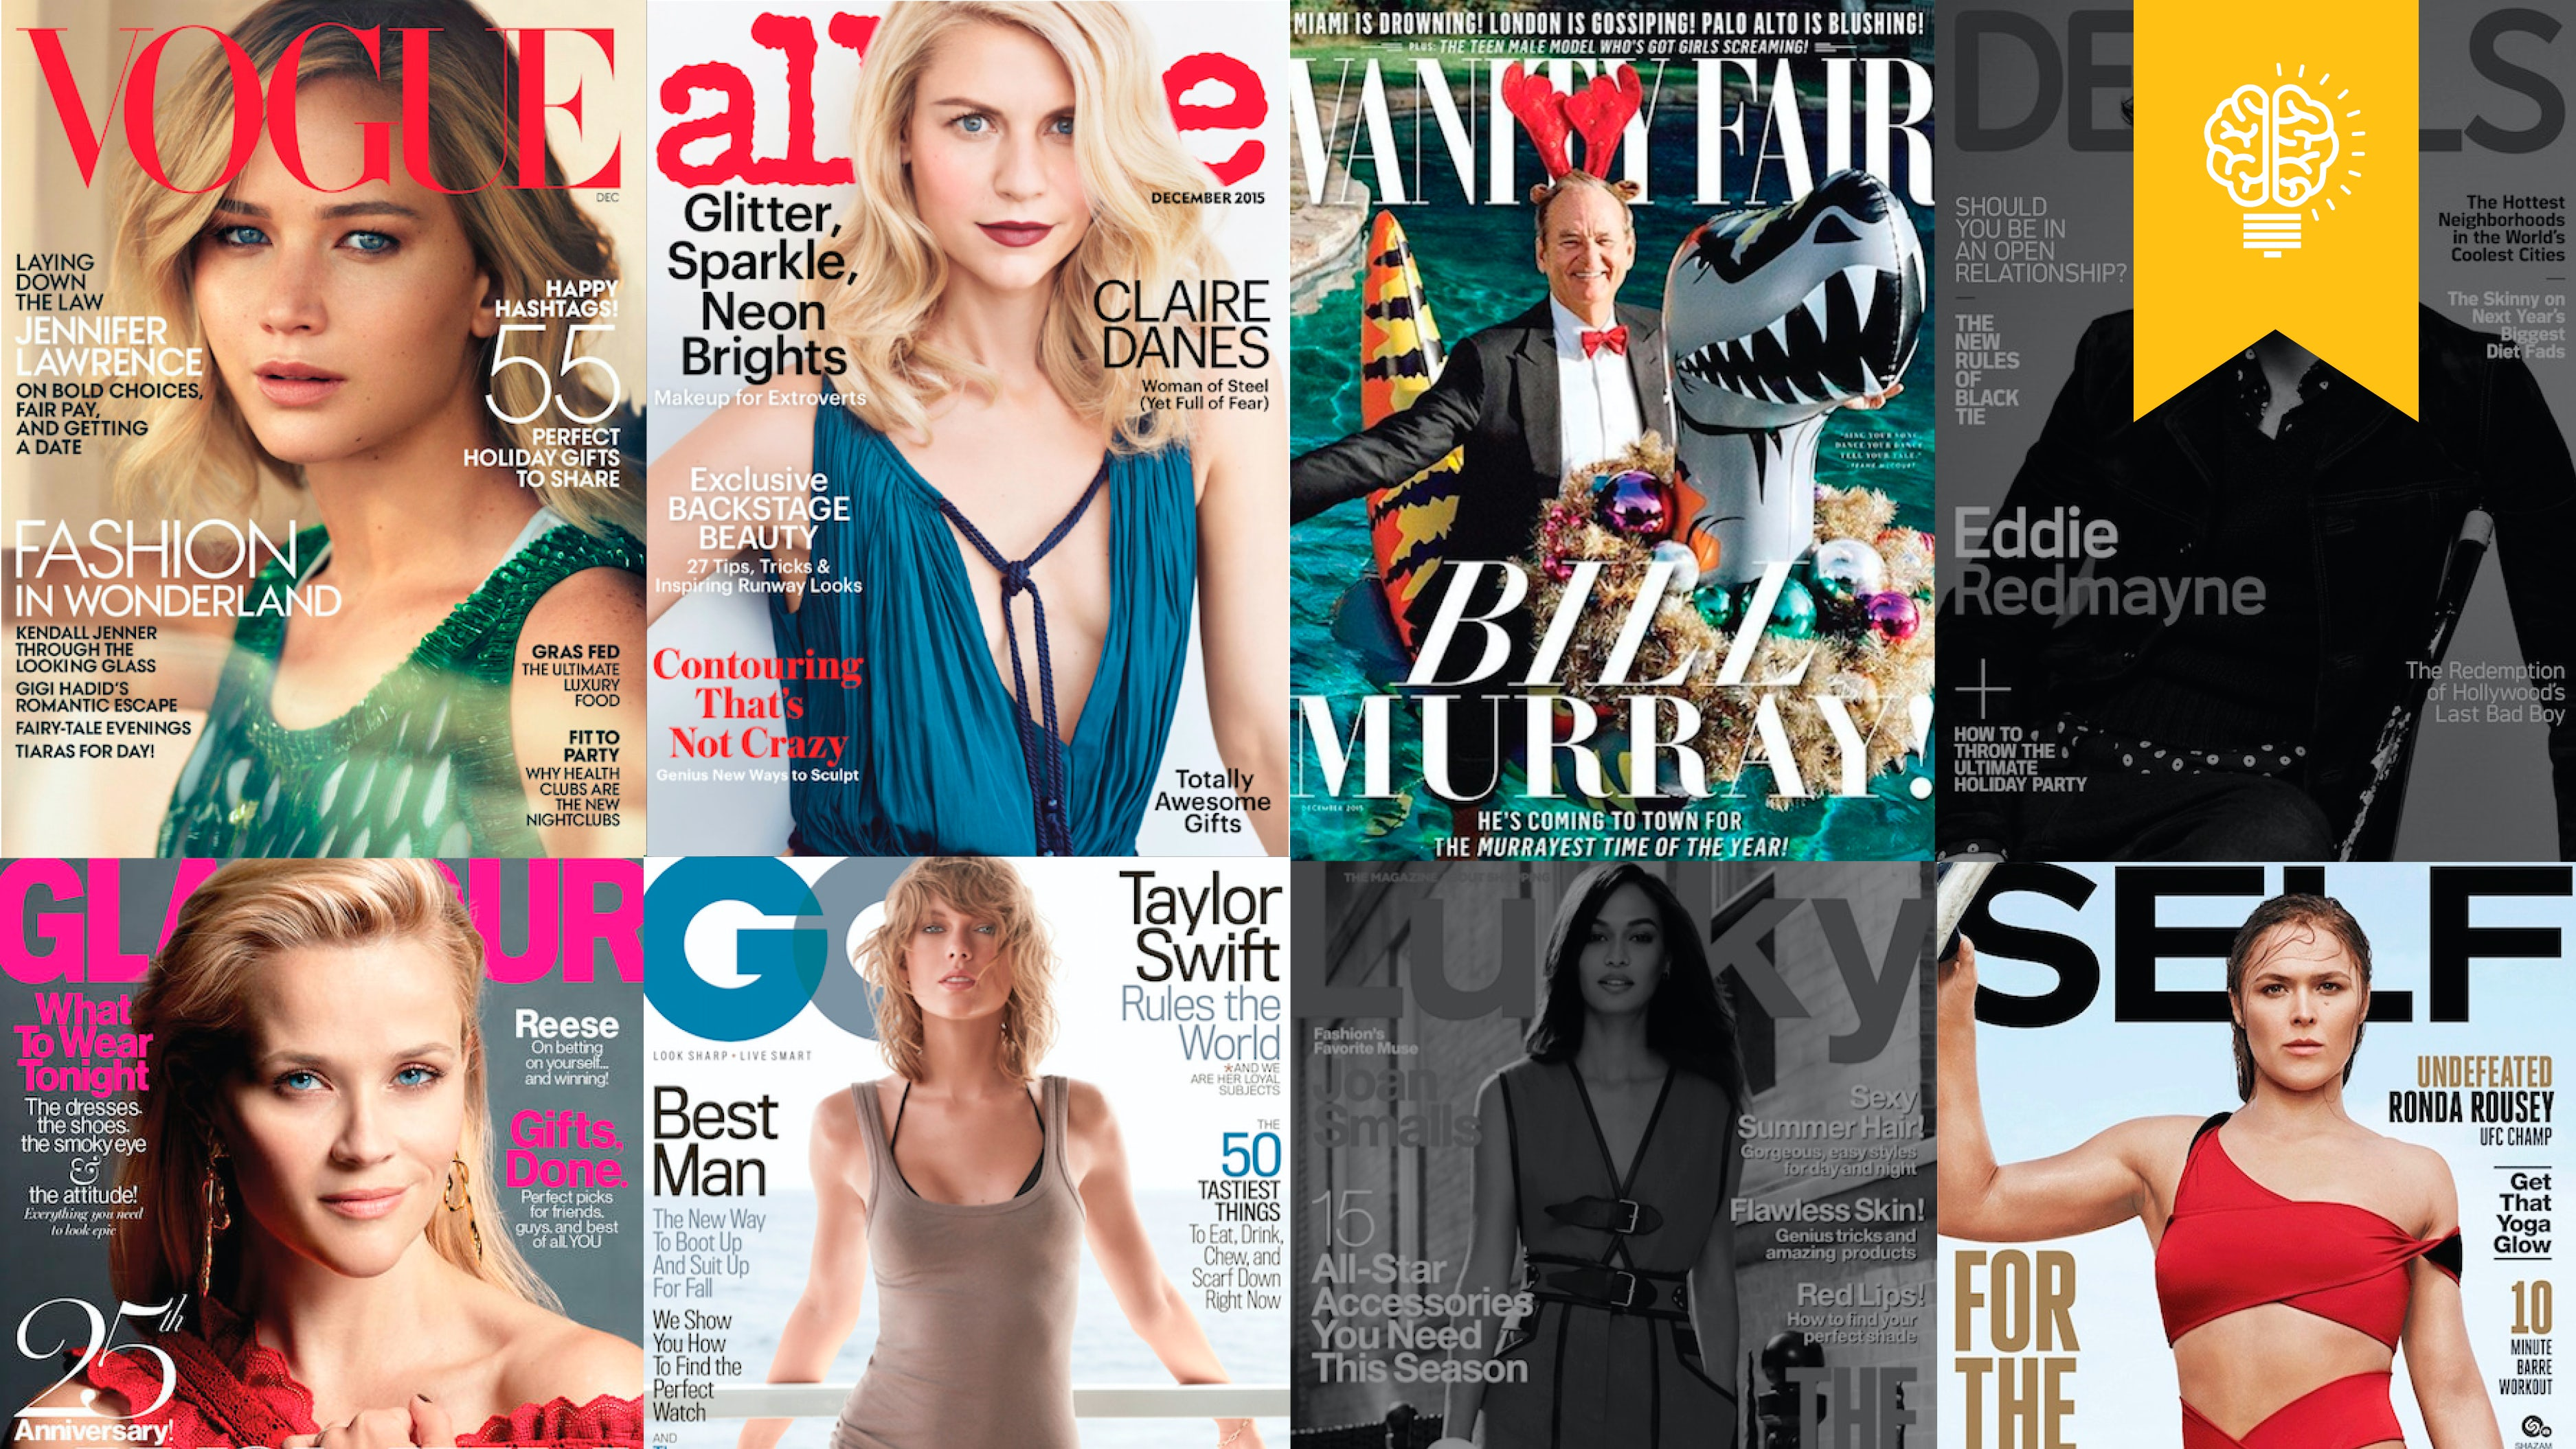 Should Condé Nast Sell Itself?